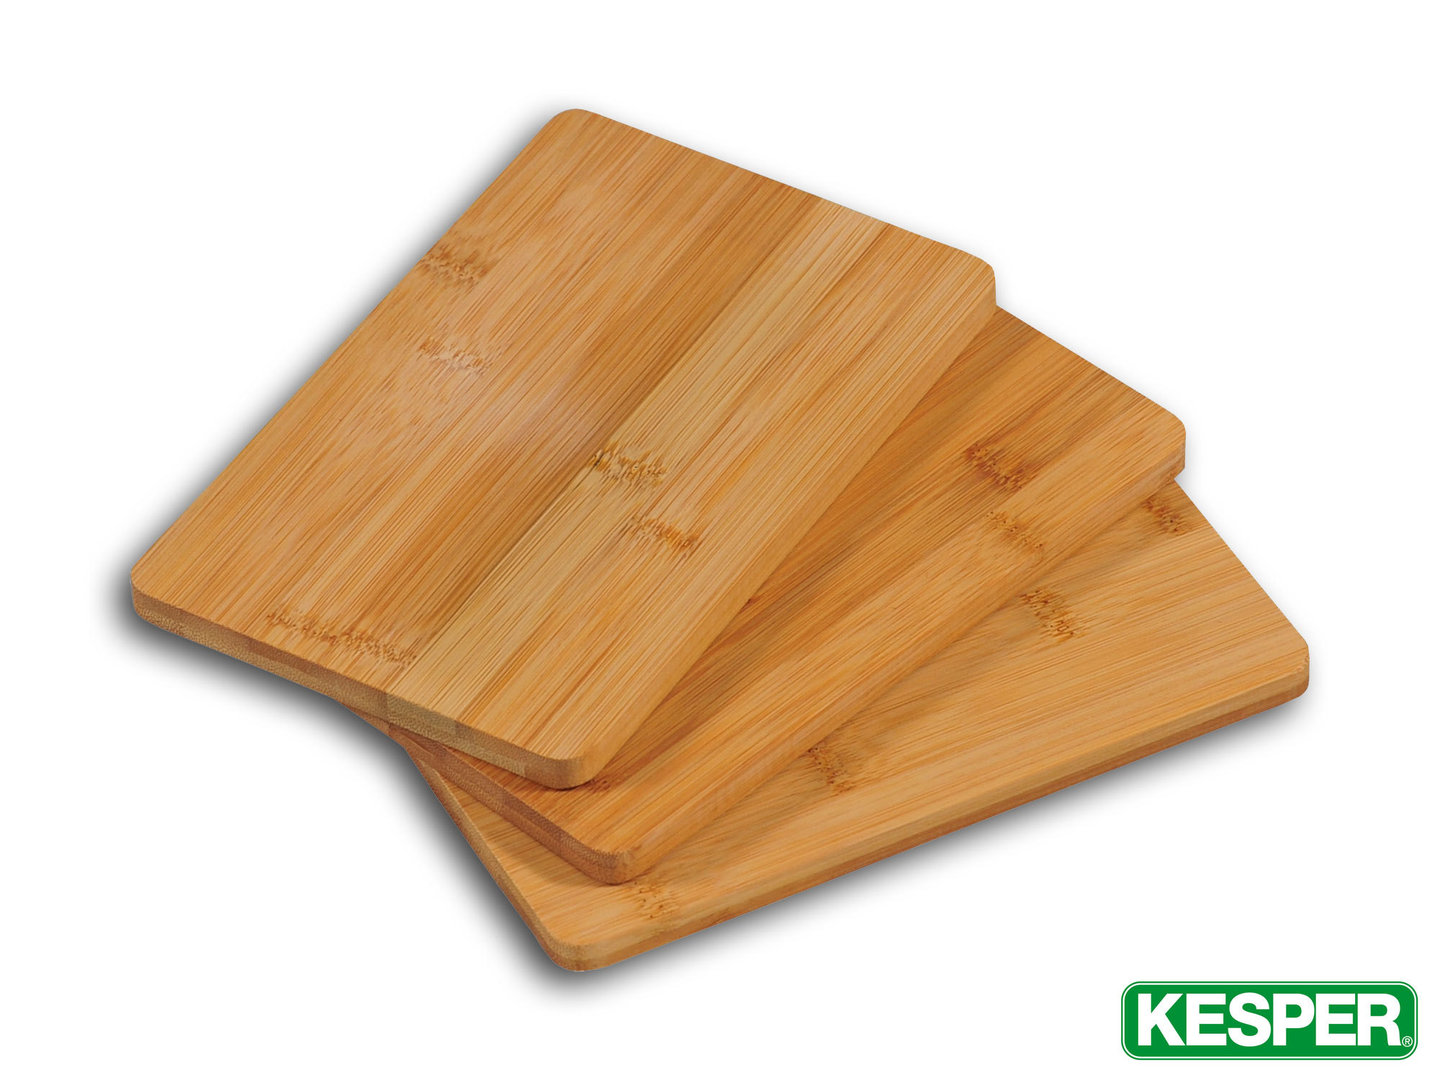 KESPER small bamboo cutting board 3pcs